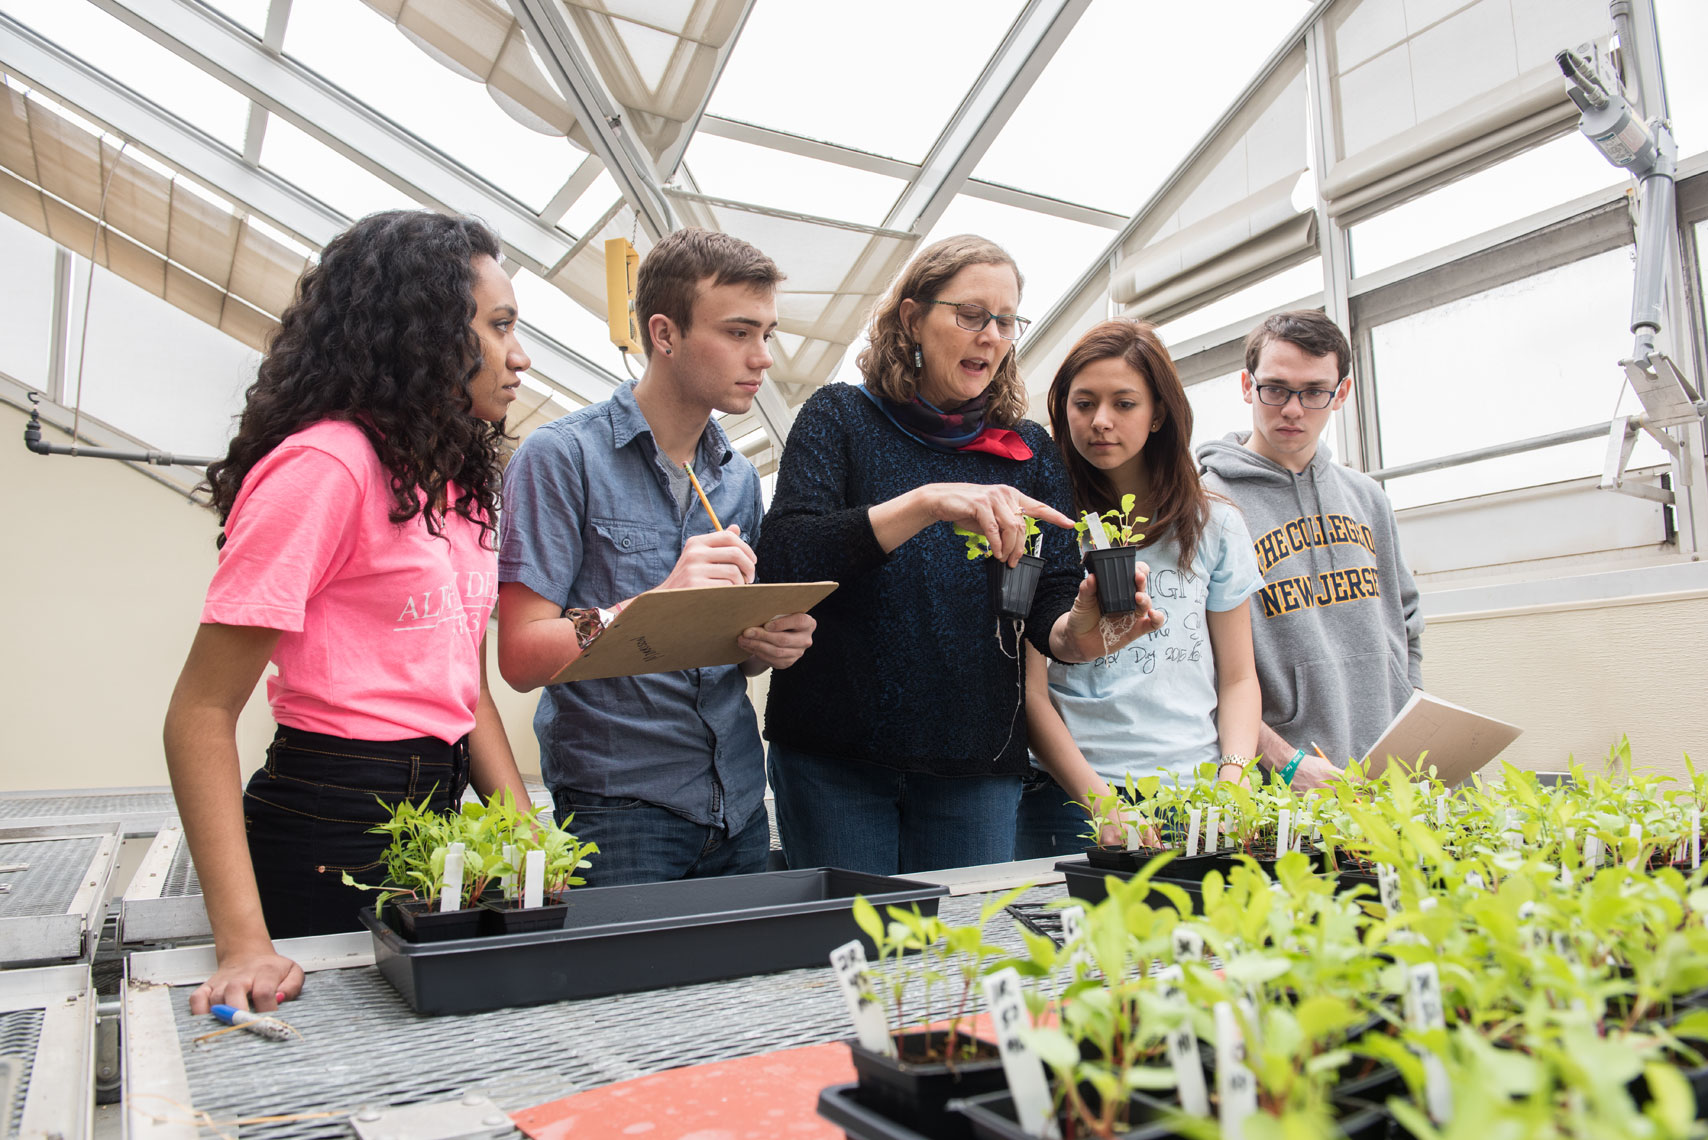 Students from the College of New Jersey gather around a plant biology professor in a greenhouse